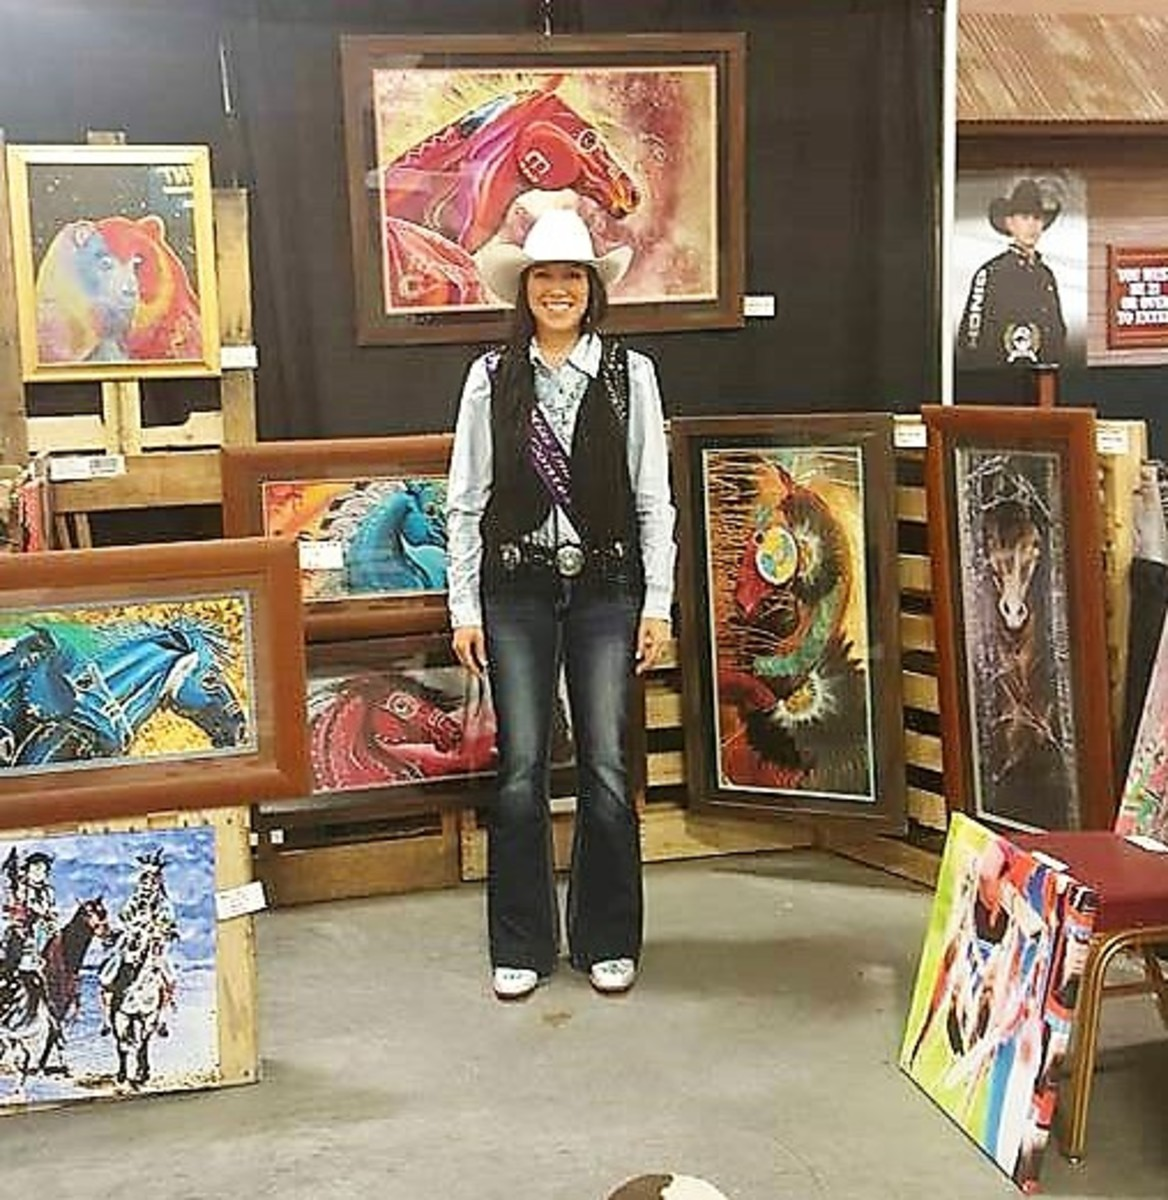 Indian National Finals Rodeo  Art Show with Rachel Heptner crowned 2017 Miss Indian Rodeo.